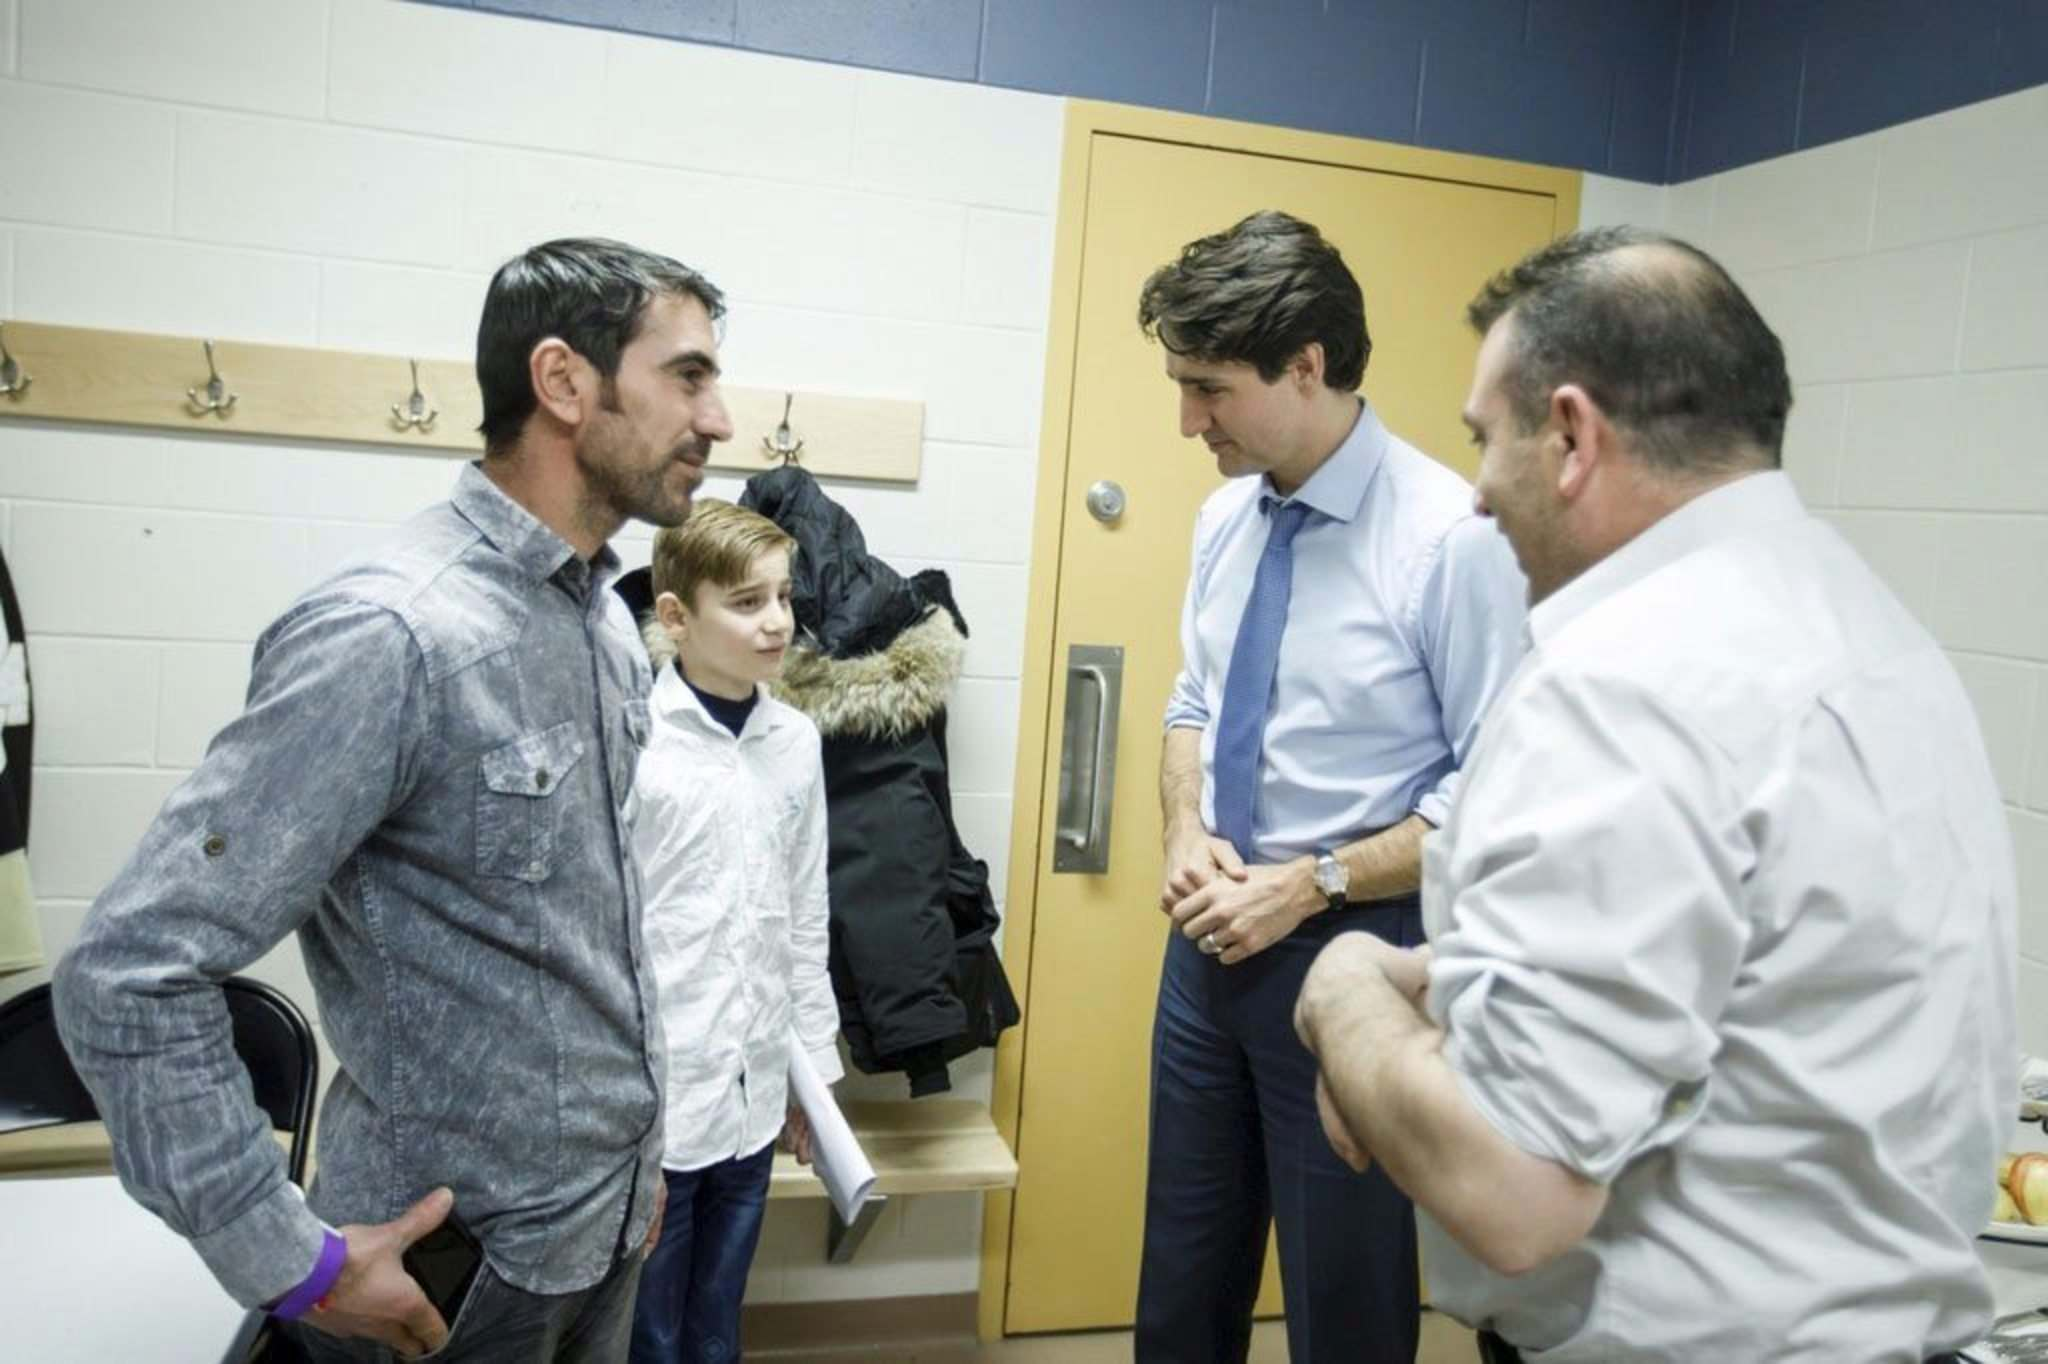 SUPPLIED   Emad Mishko Tamo, the Yazidi boy who spent years in ISIS captivity, got a brief meeting with Prime Minister Justin Trudeau Wednesday night in Winnipeg. Tamo, who's been trying to meet the prime minister since January, has previously said he wants to become a spokesman for other persecuted Yazidi children. In photo with Trudeau is Emad Mishko Tamo's uncle, Hadji Tamo, left. The other man is not identified.